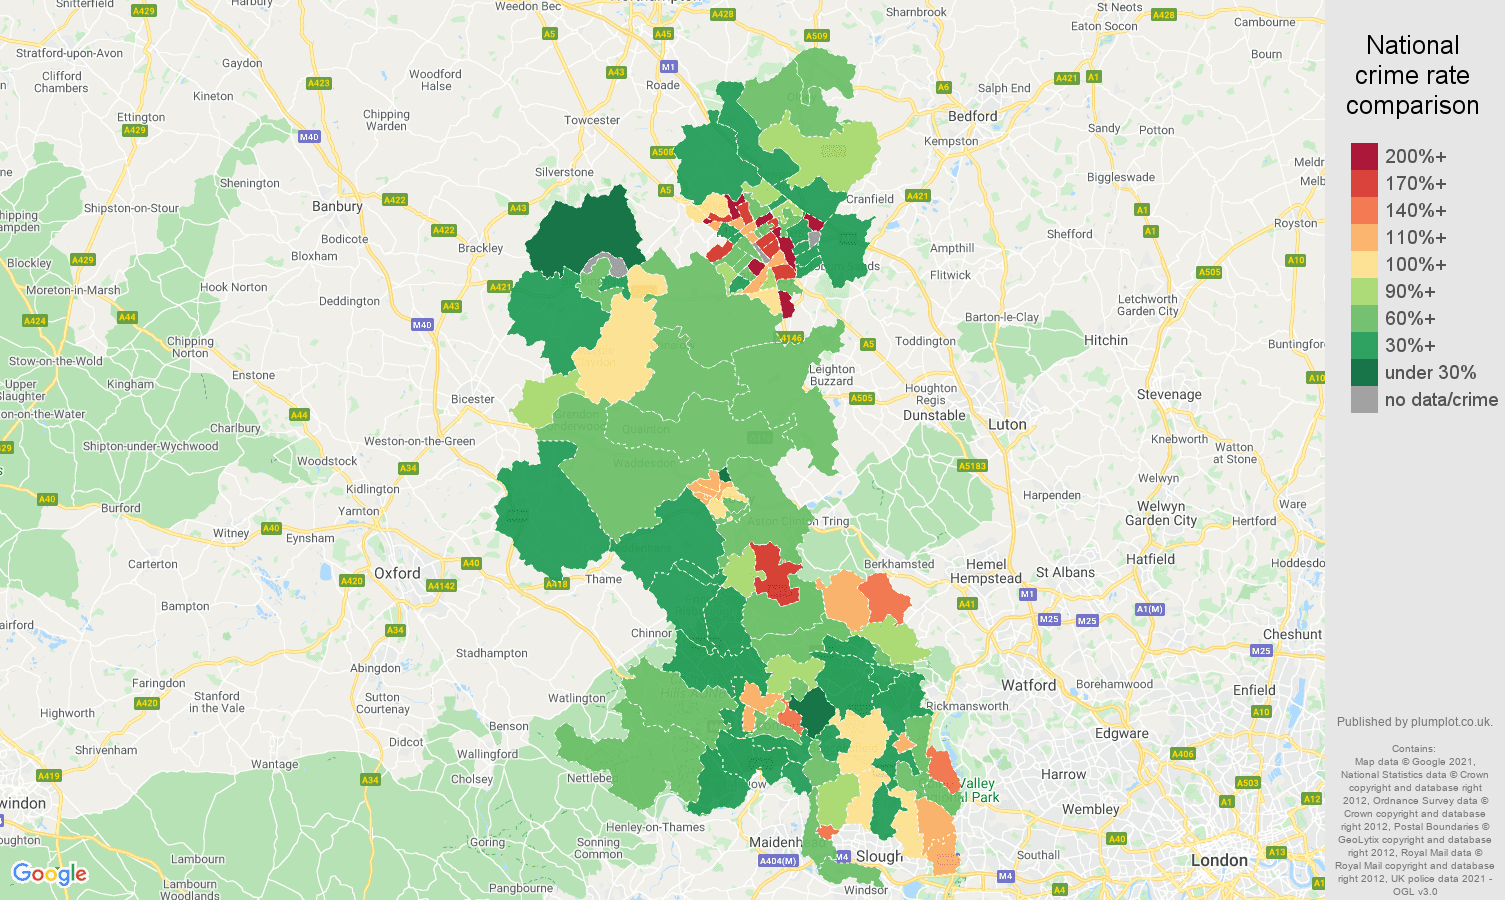 Buckinghamshire criminal damage and arson crime rate comparison map